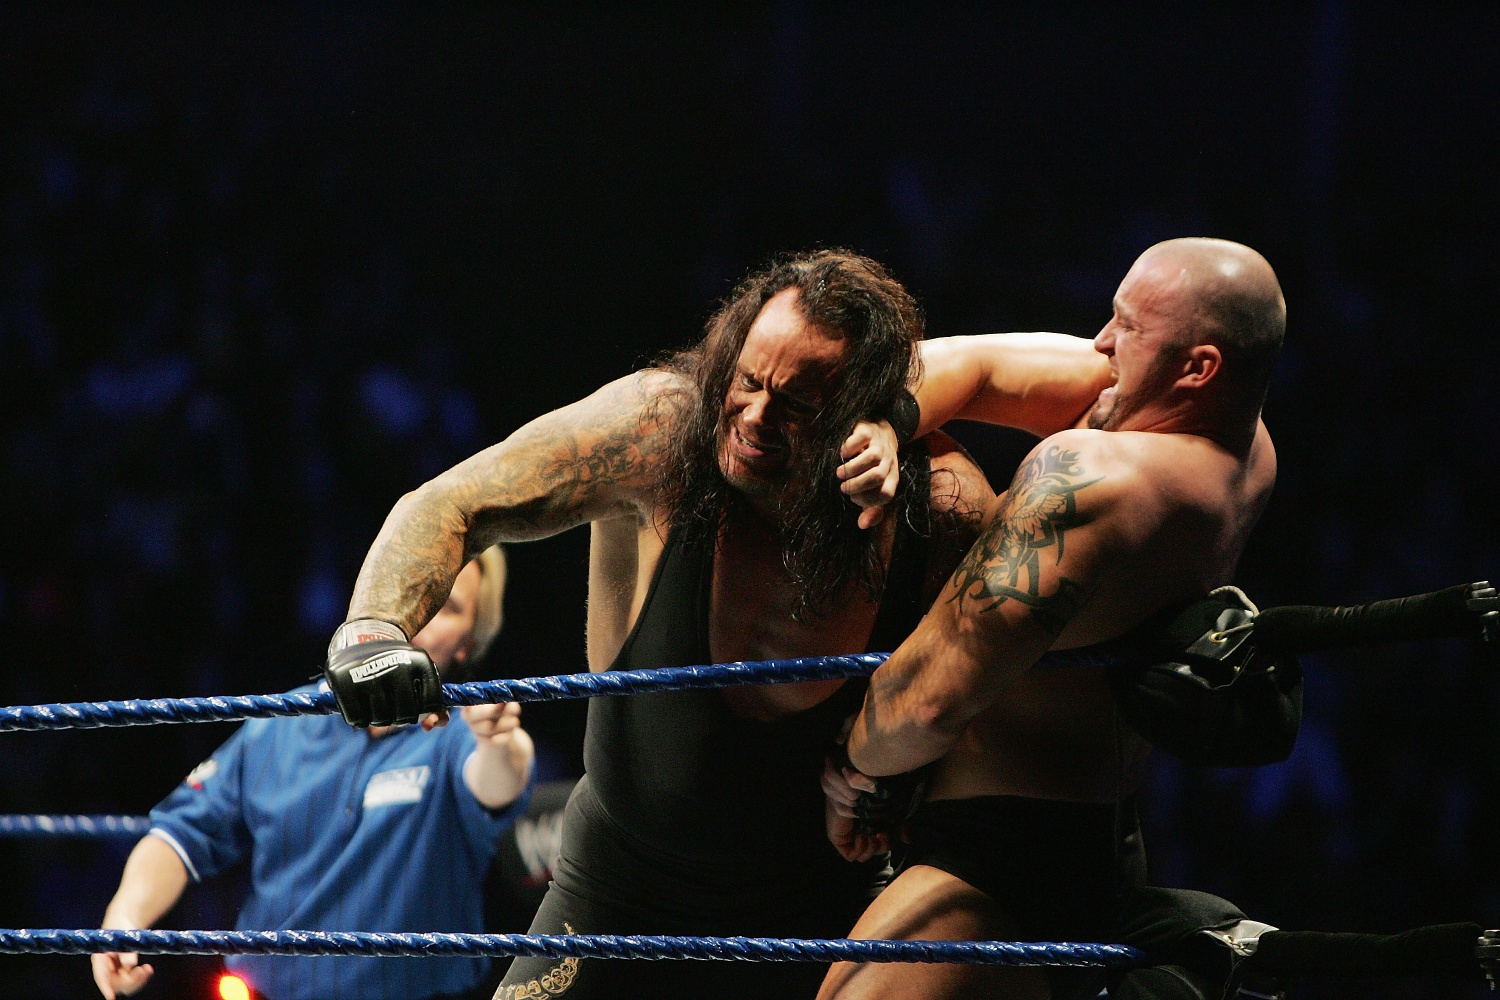 The Undertaker vs Bam Neely